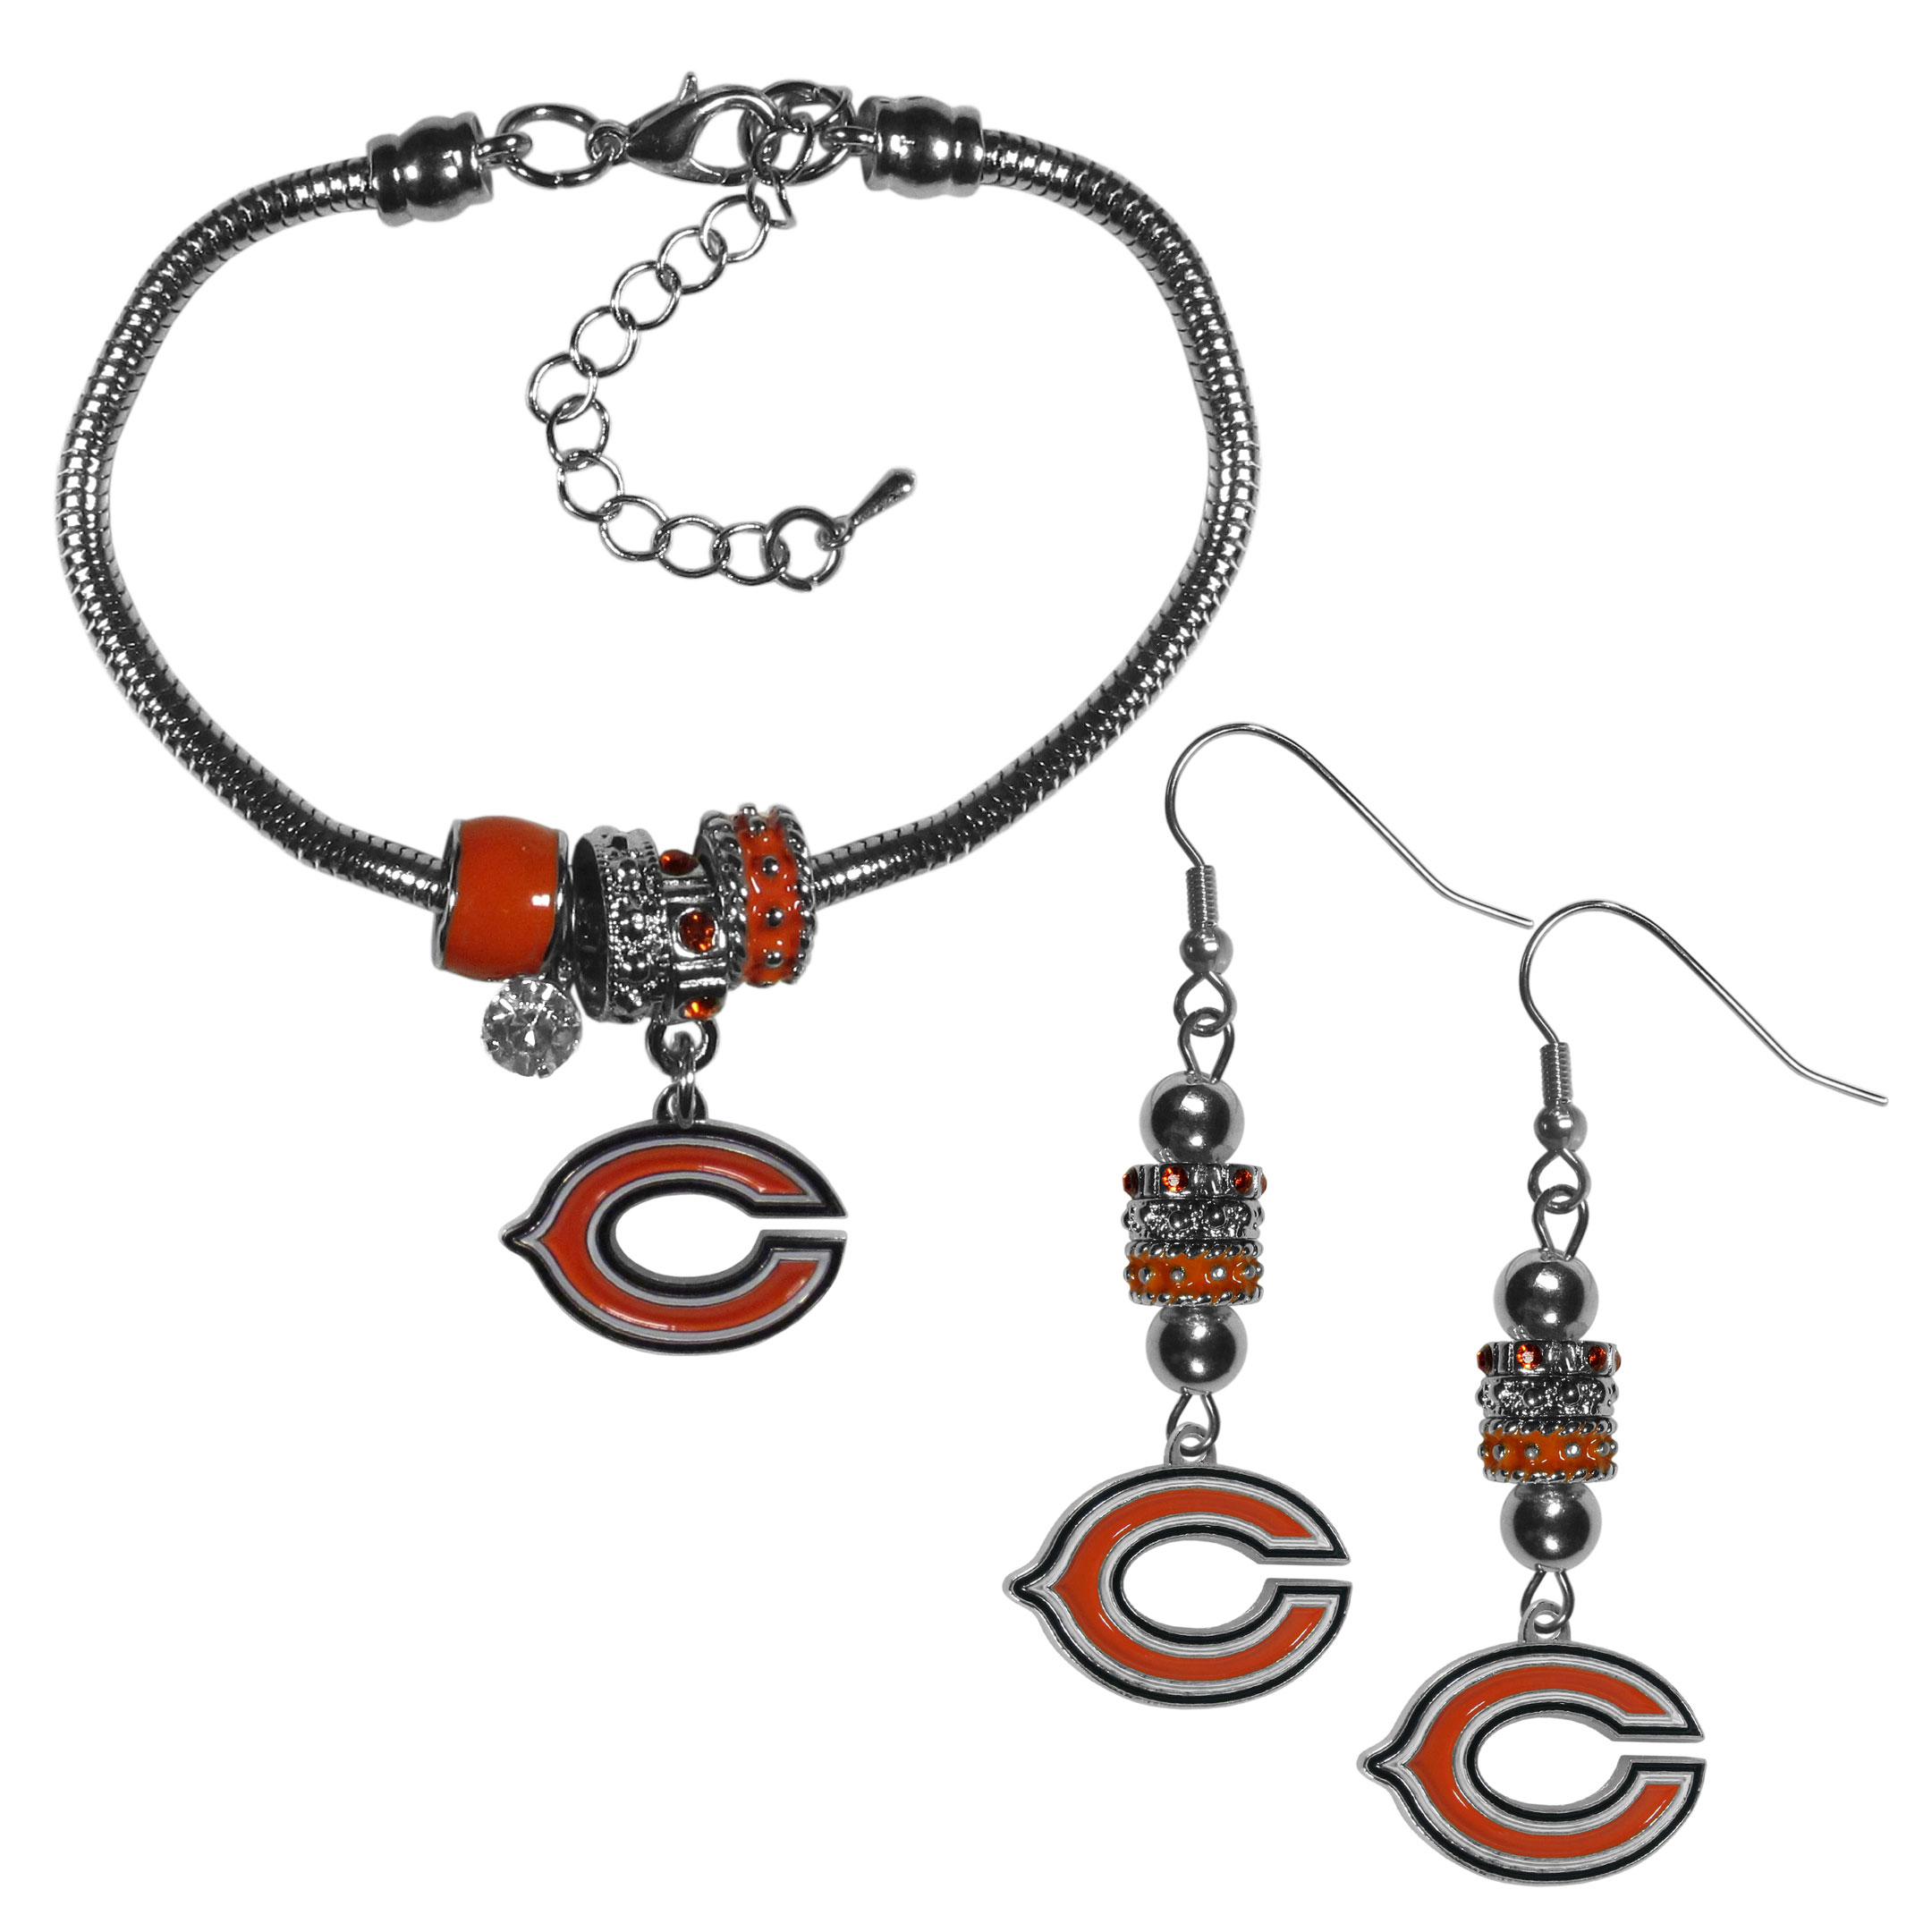 Chicago Bears Euro Bead Earrings and Bracelet Set - We combine the popular Euro bead style with your love of the Chicago Bears with this beautiful jewelry set that includes earrings and a matching bracelet. The stylish earrings feature hypoallergenic, nickel free fishhook posts and 3 team colored Euro beads and a metal team charm. The matching snake chain bracelet is 7.5 inches long with a 2 inch extender and 4 Euro beads with a rhinestone charm and team charm.